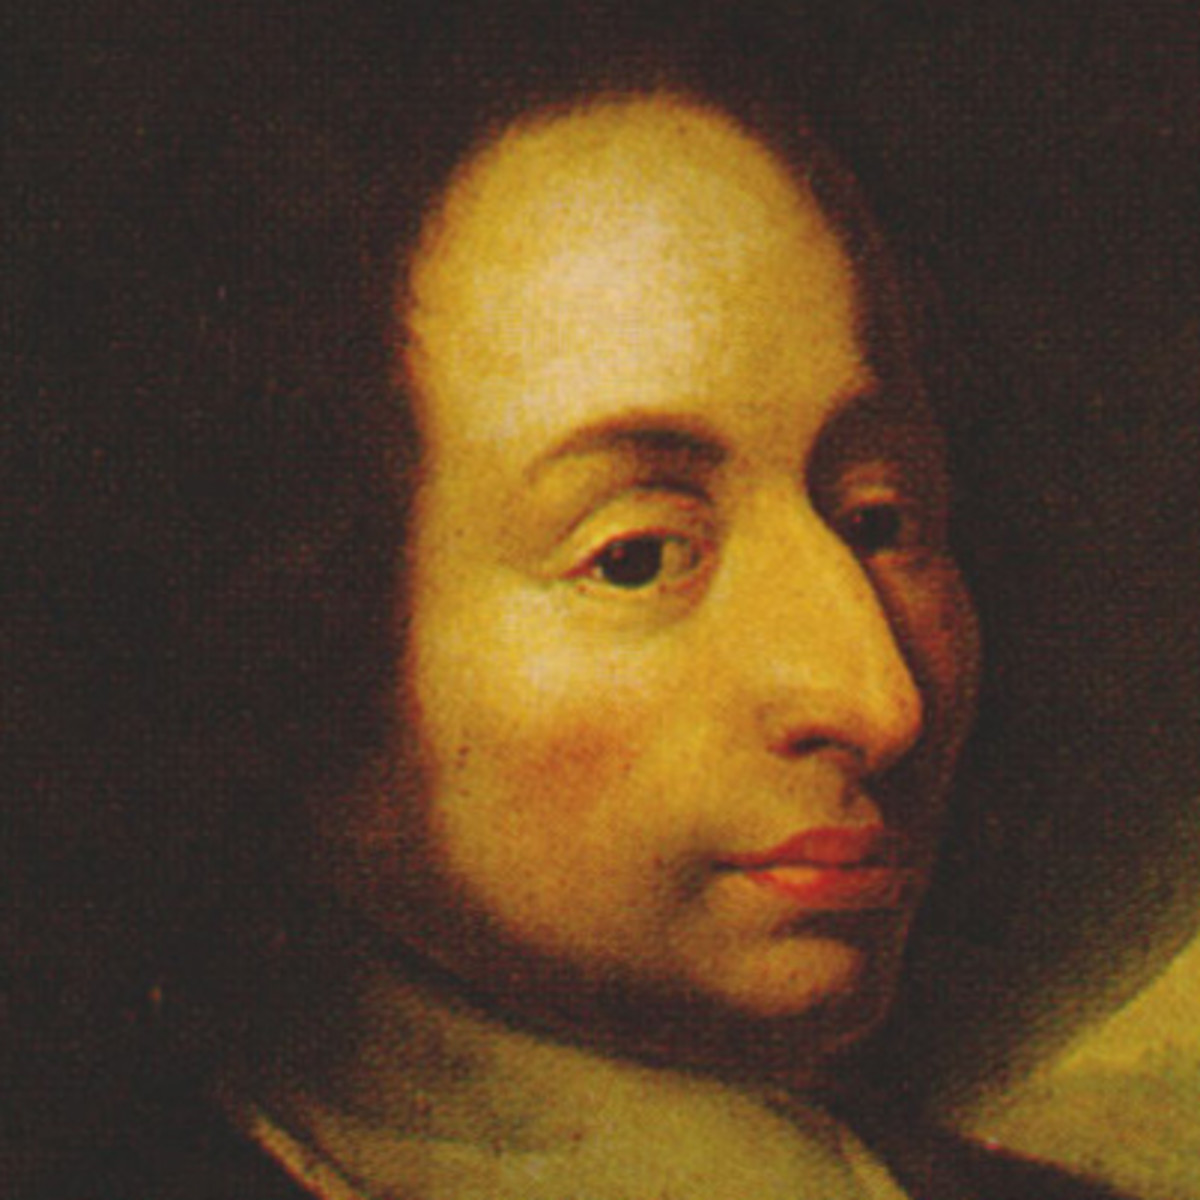 a biography of blaise pascal the mathematician (biography) blaise (blɛz) 1623-62, french philosopher, mathematician, and physicist as a scientist, he made important contributions to hydraulics and the study of atmospheric pressure and, with fermat, developed the theory of probability.